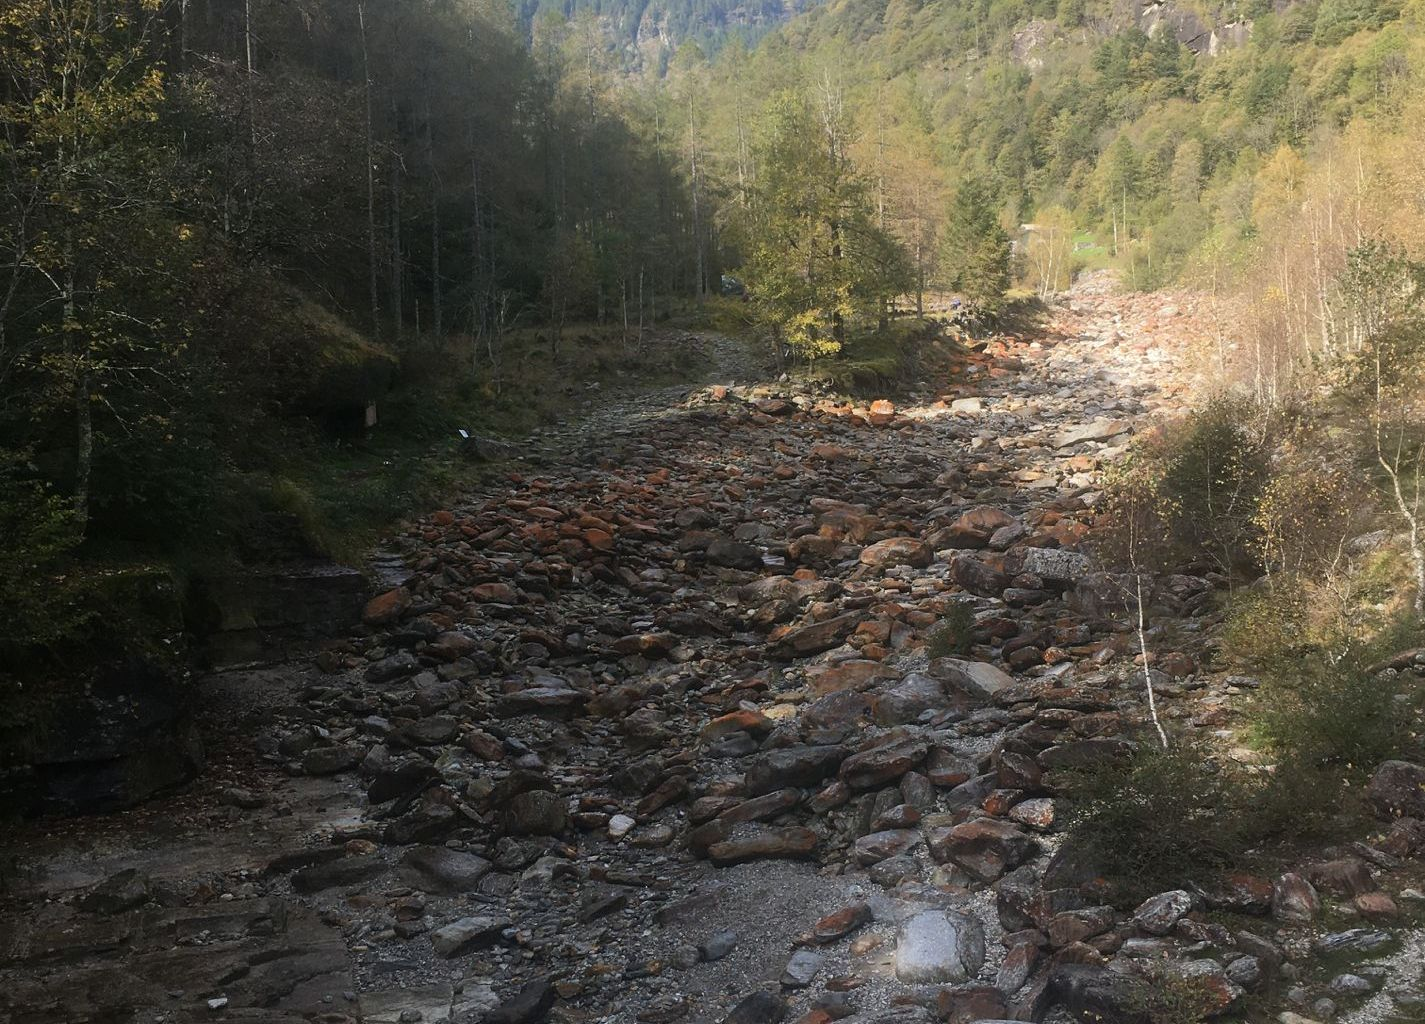 Due to the subsidised use of hydroelectric power, water is now being diverted from many mountain streams for power stations. This impairs the passability of water courses and disturbs the flow dynamics. As a result, biodiversity is reduced.